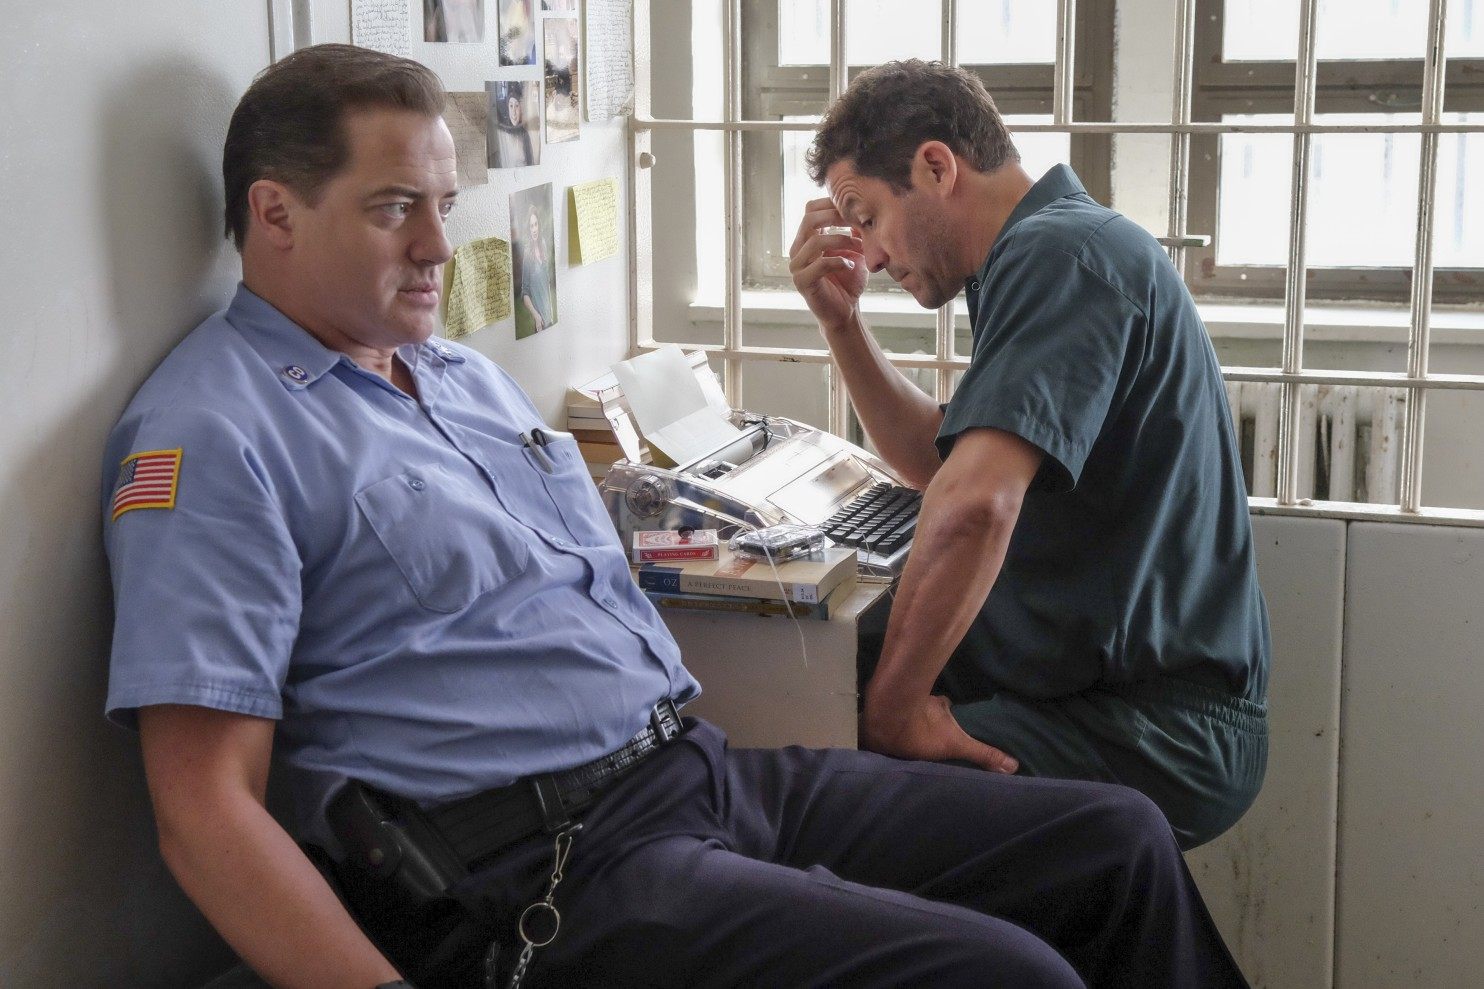 The Affair Brendan Fraser Dominic West Showtime/Phil Caruso